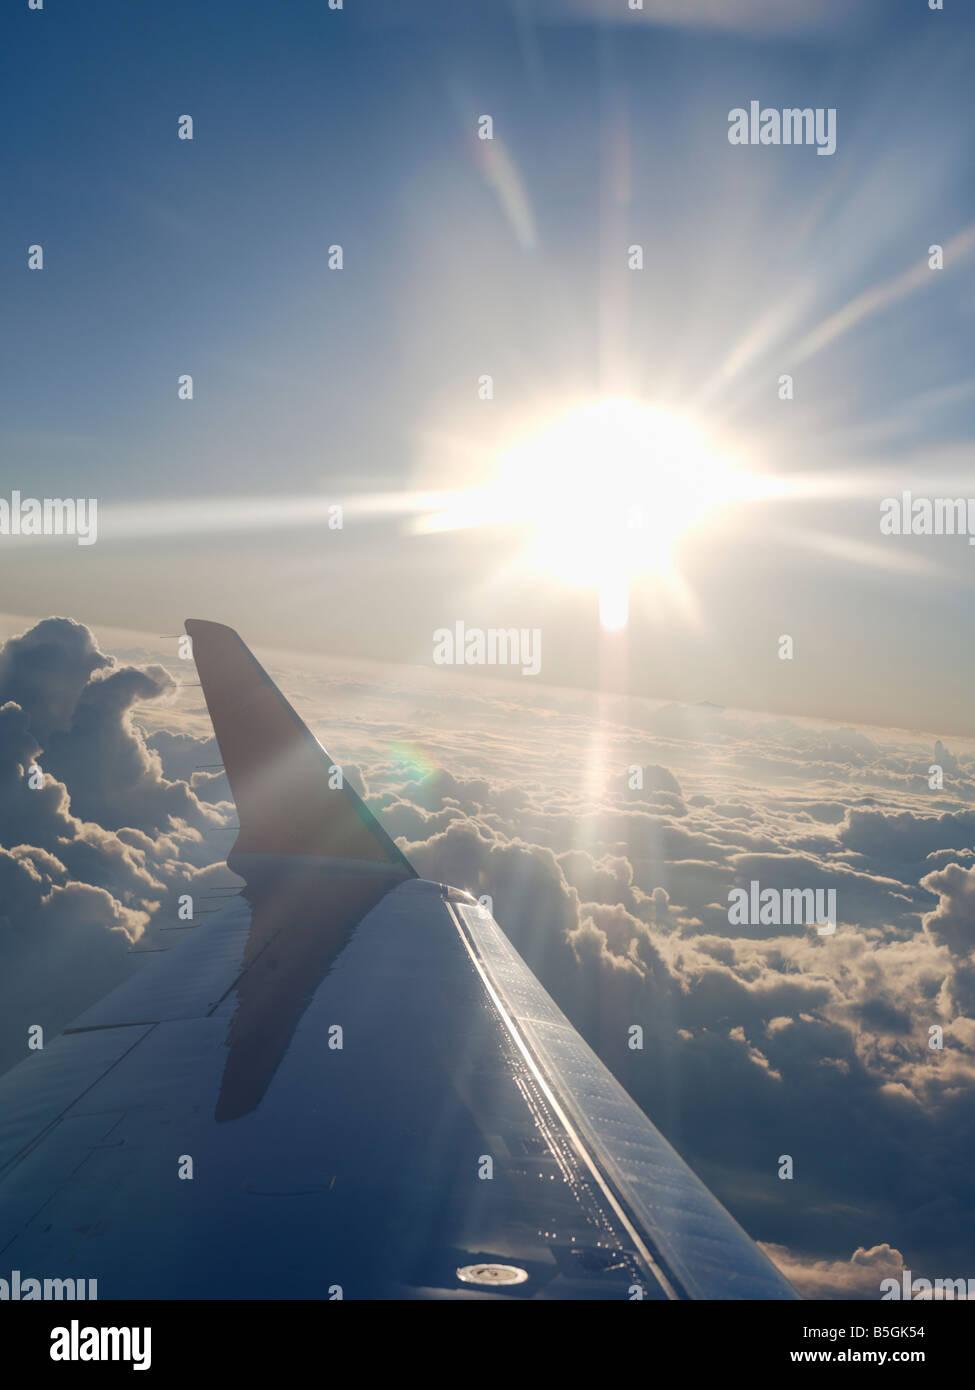 USA,Texas,Houston,airplane wing and sun burst over clouds while in flight - Stock Image